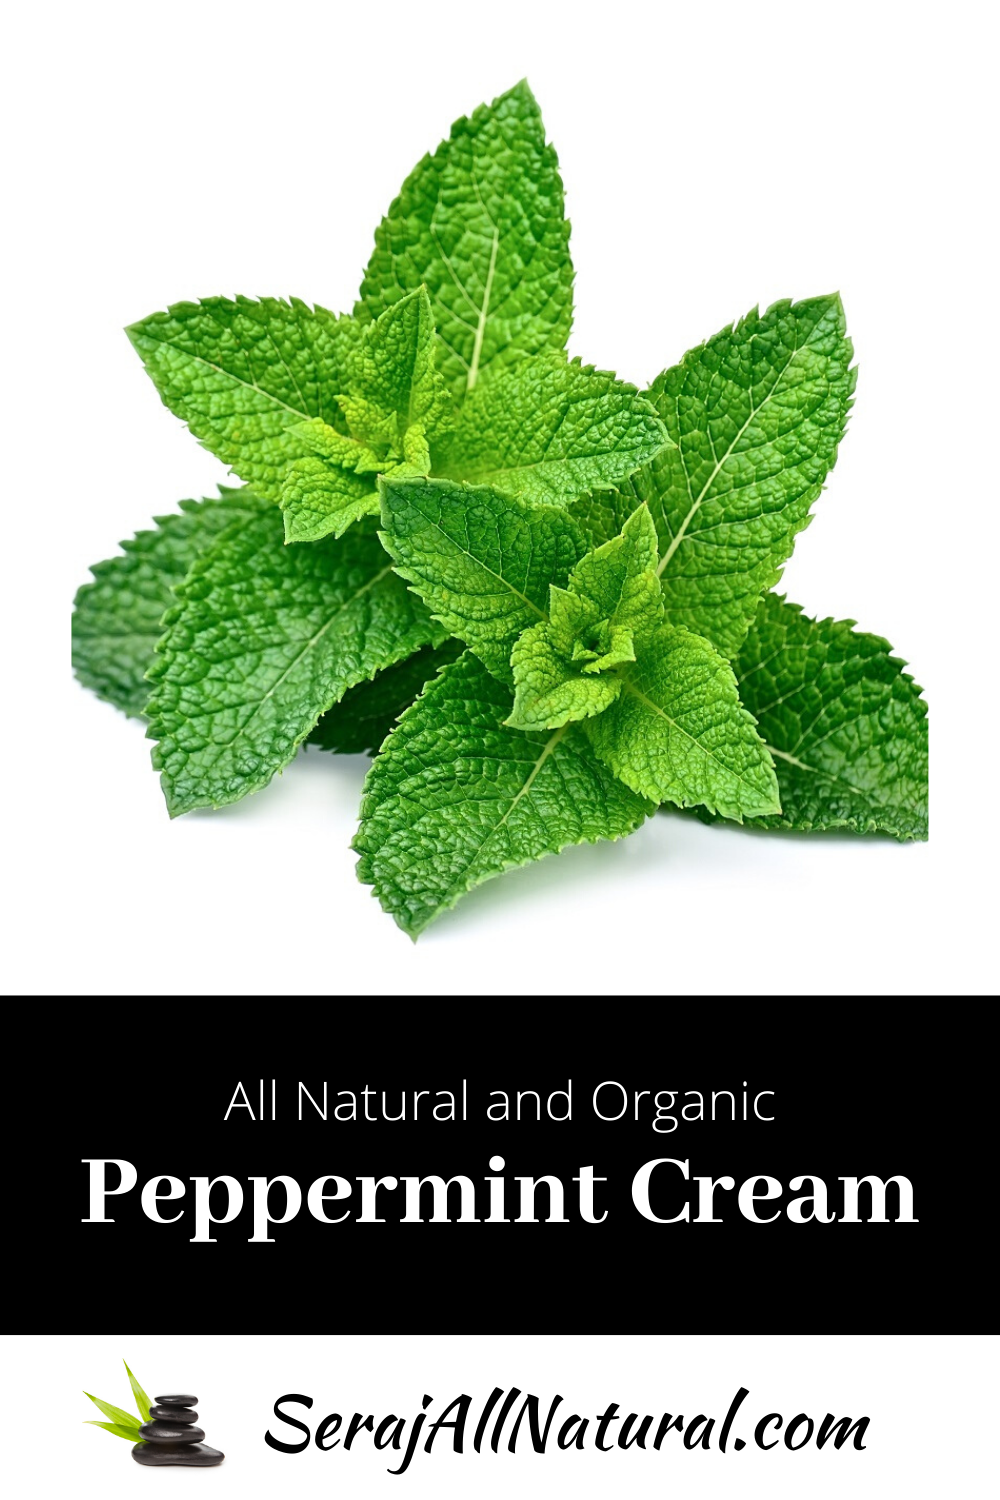 Natural and Organic Peppermint Foot and Body Cream from Seraj